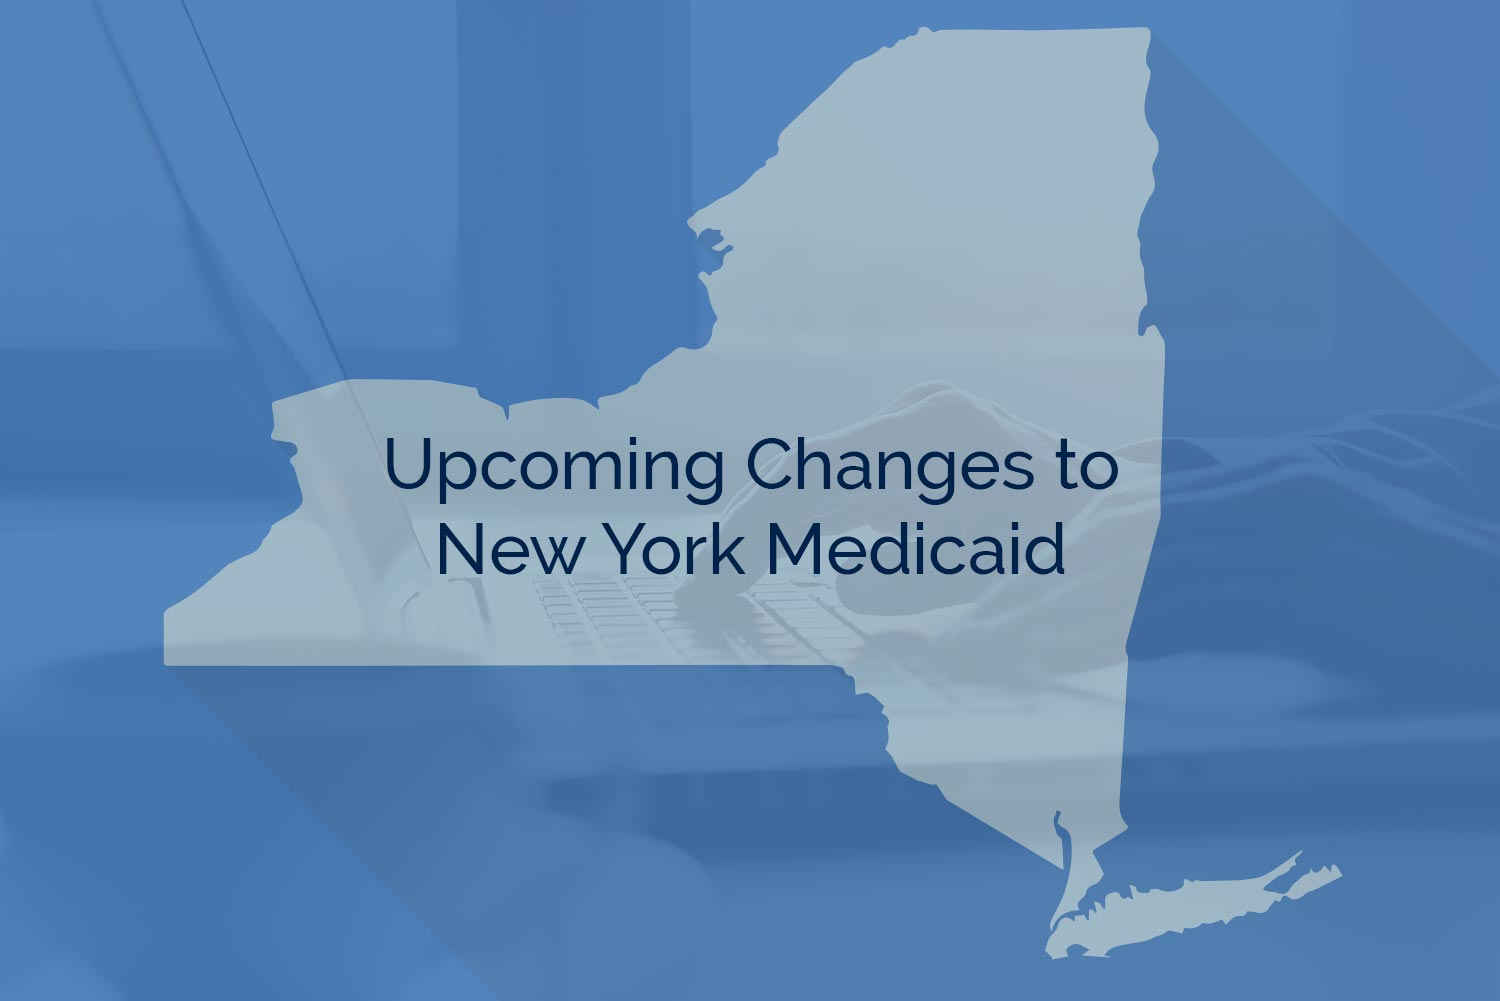 Upcoming Changes to New York Medicaid